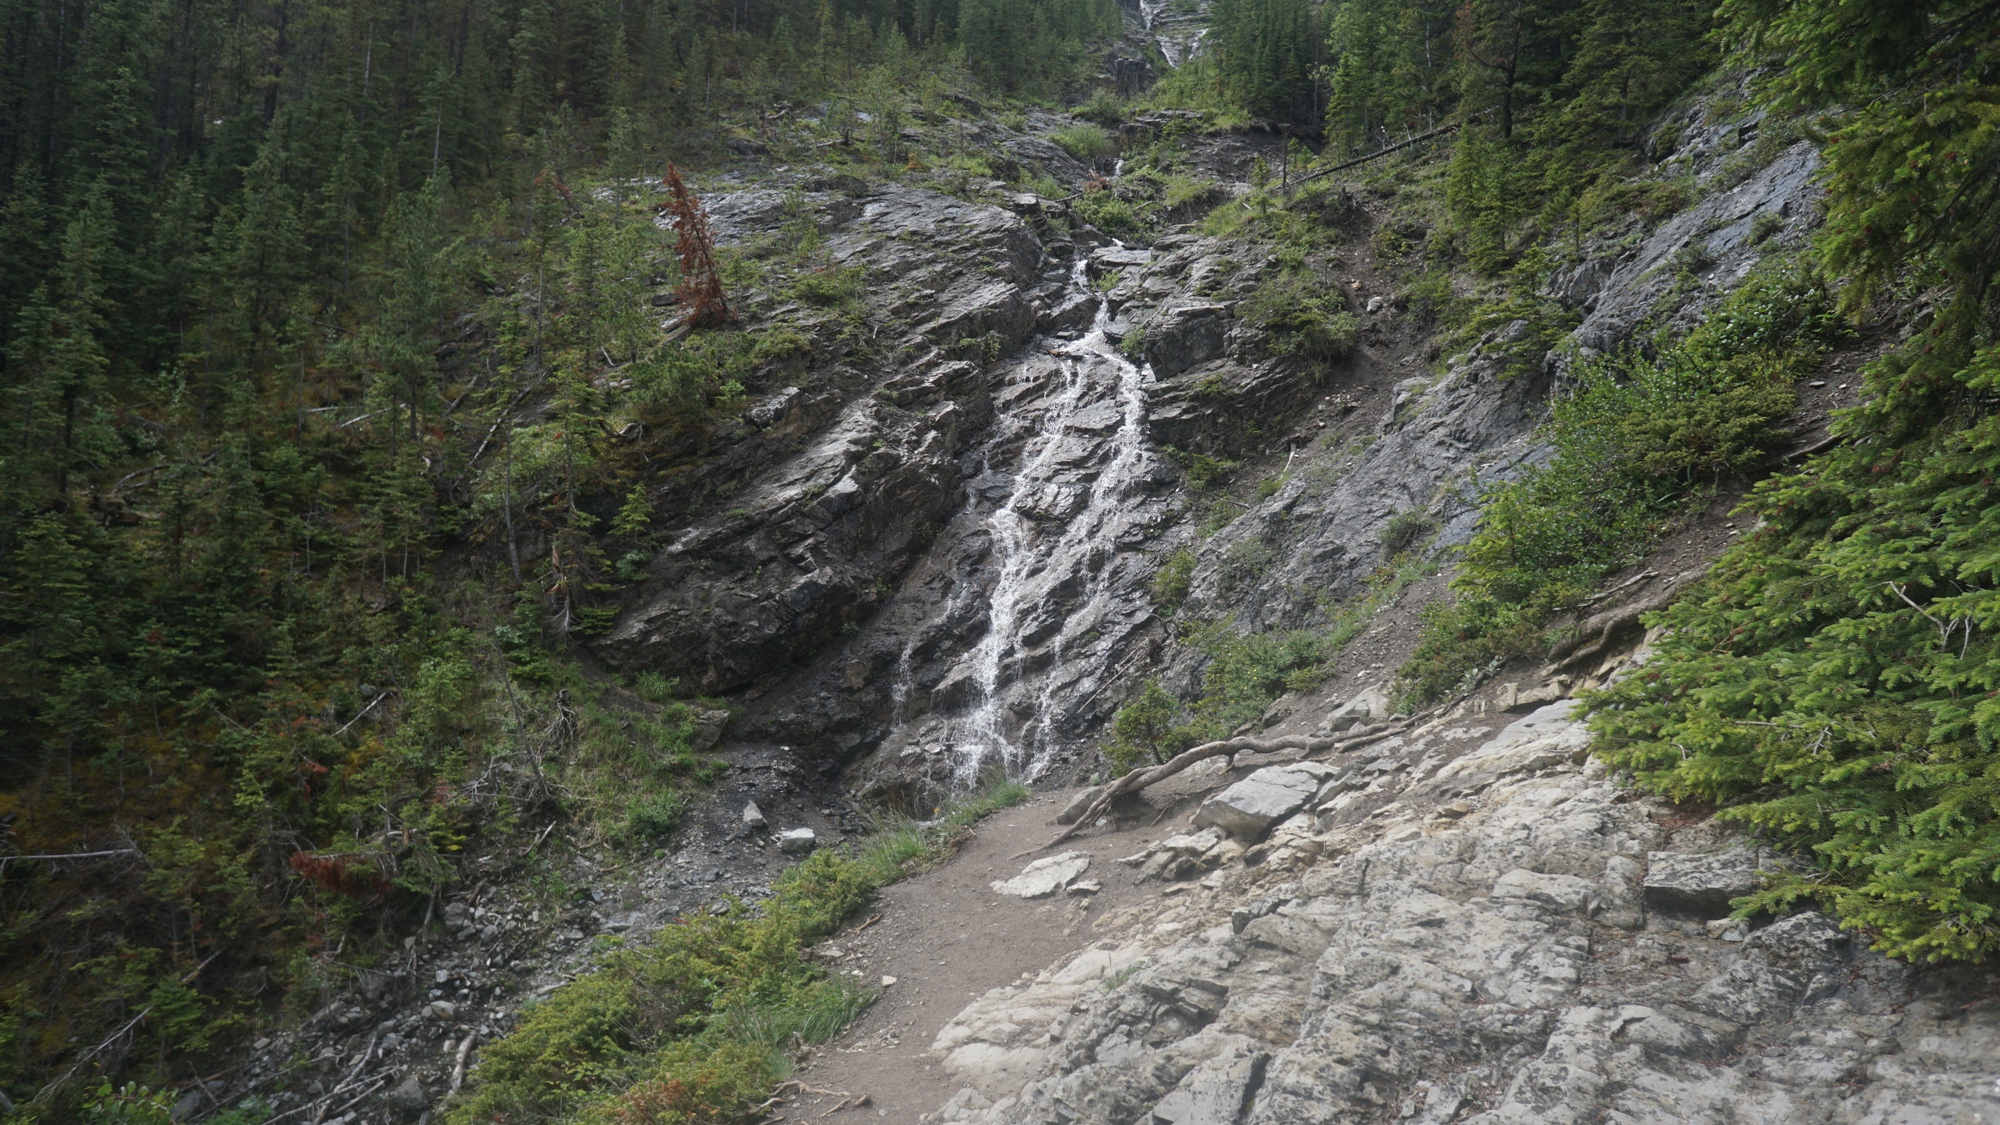 Ein Wasserfall am Sulphur Mountain Trail.